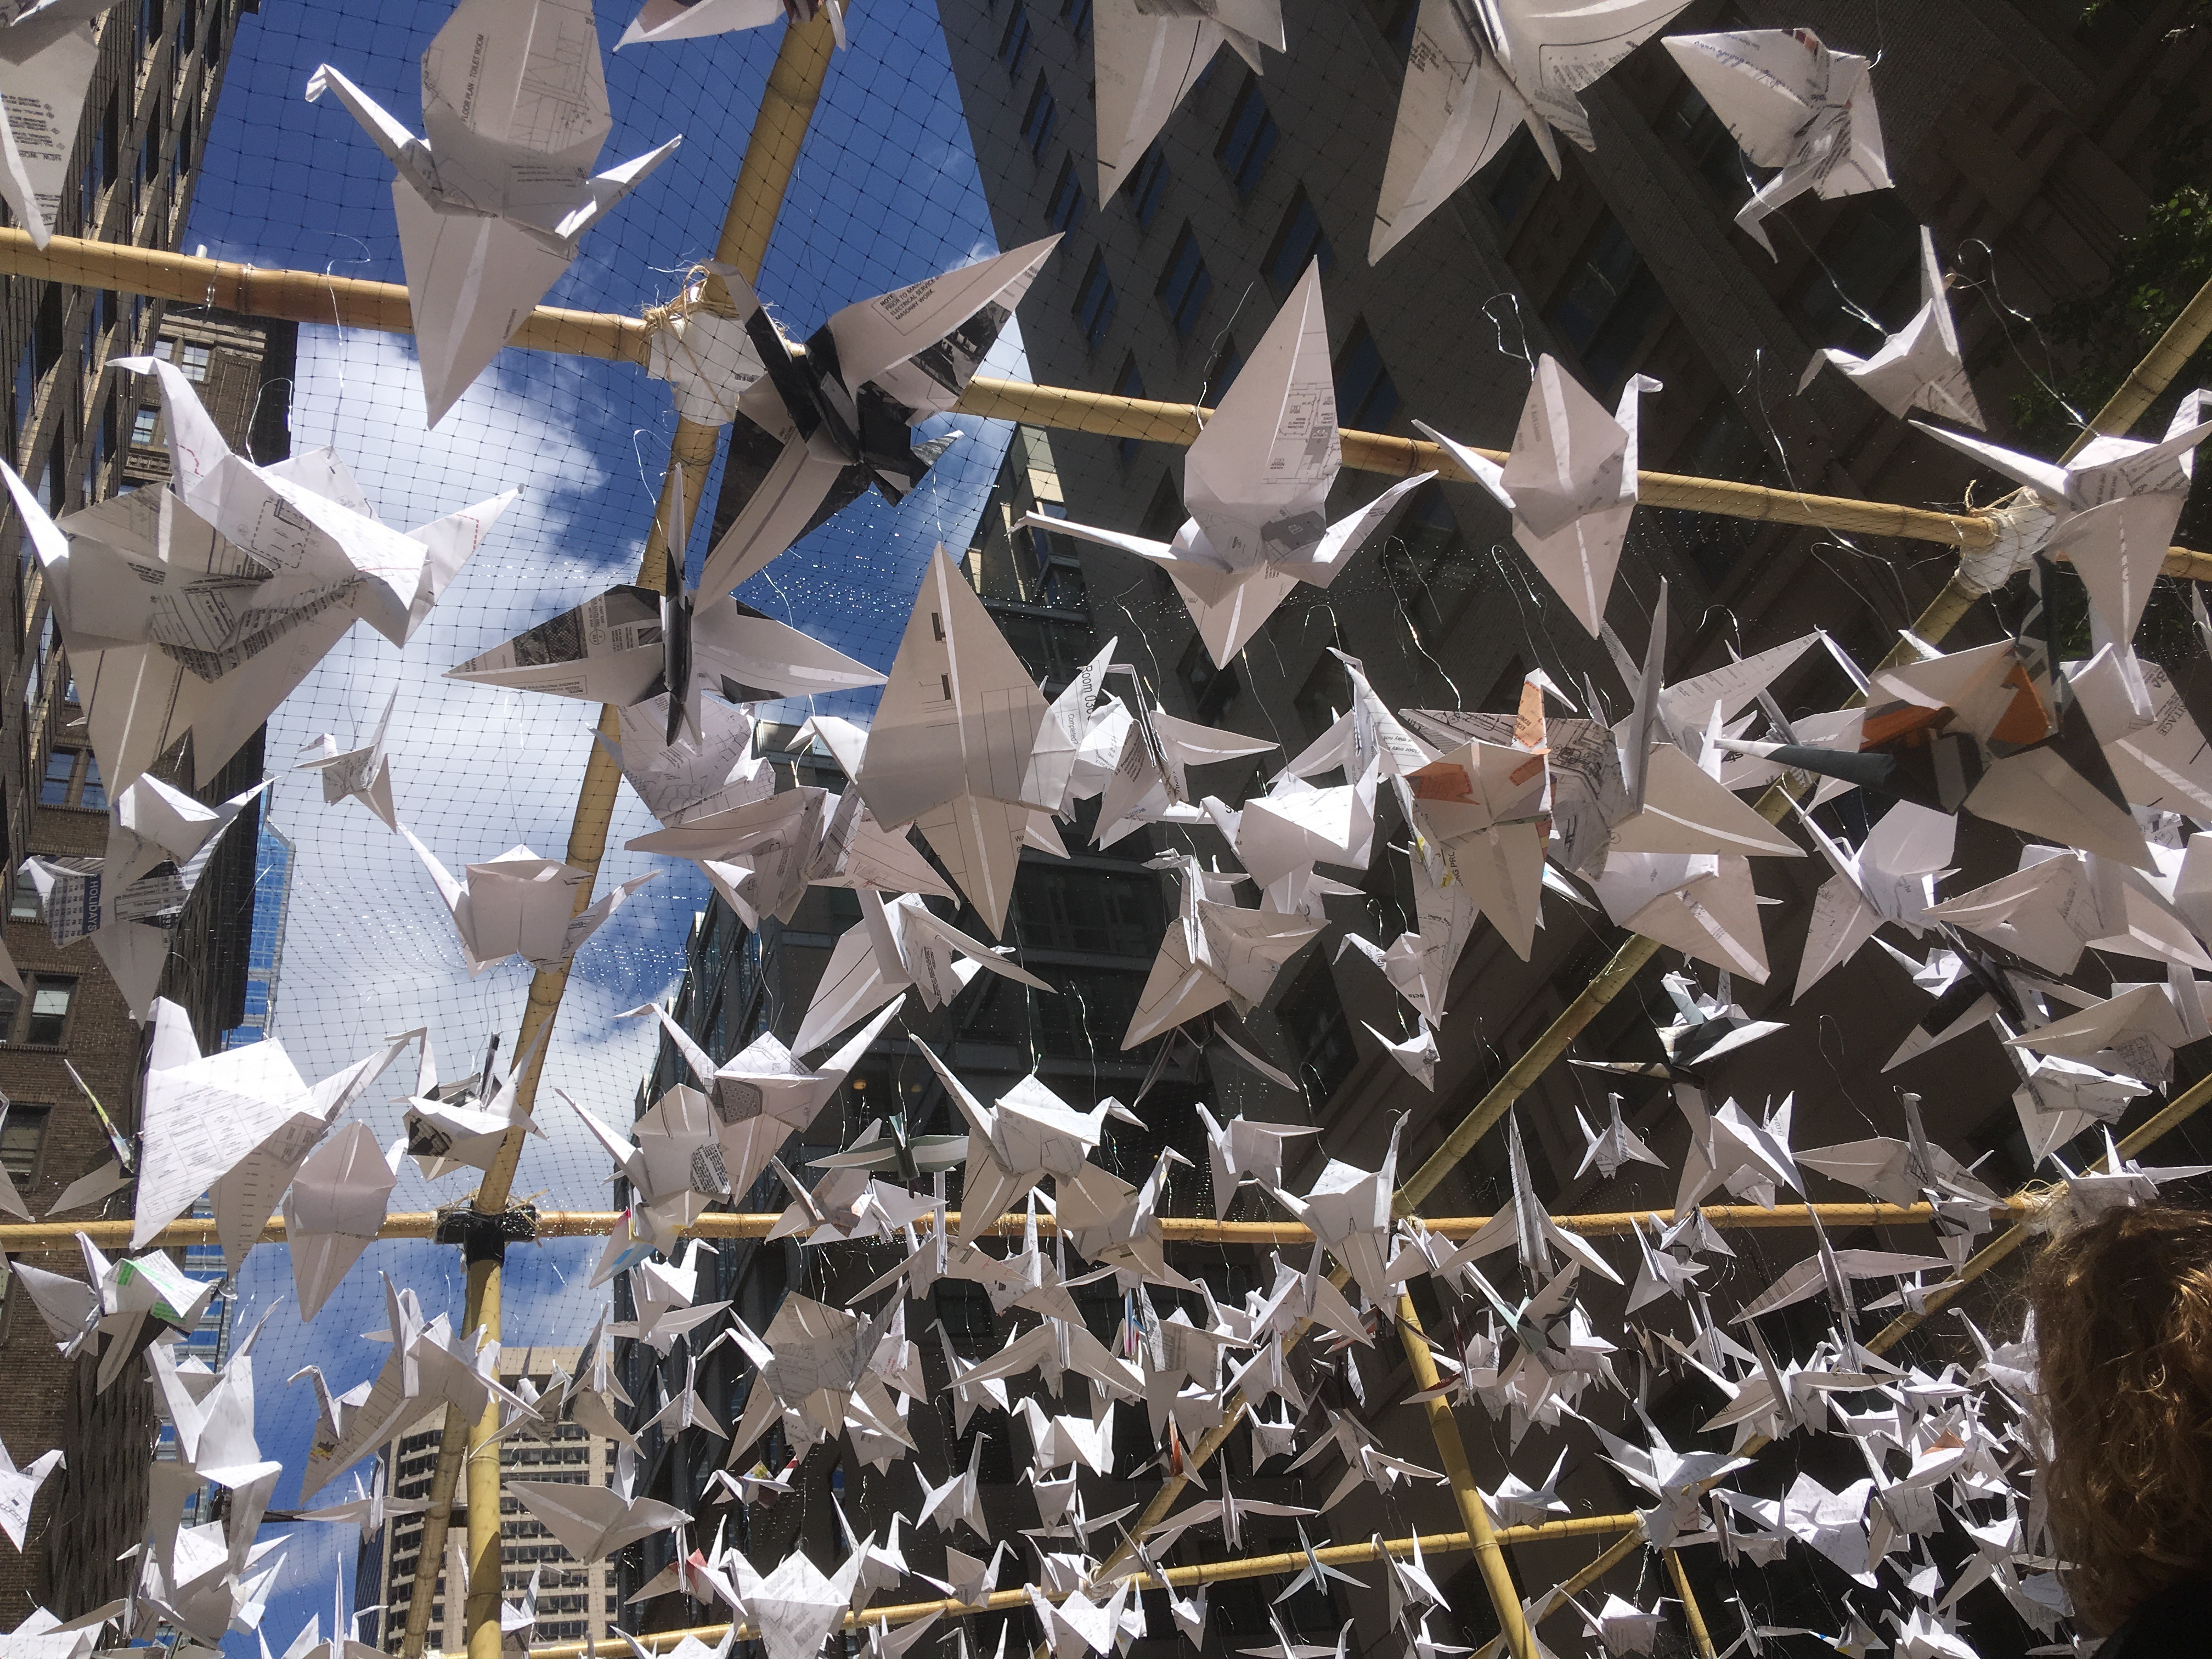 Crane your neck and check out the origami at SMP Architect's Park(ing) Day installation at 16th and Chestnut